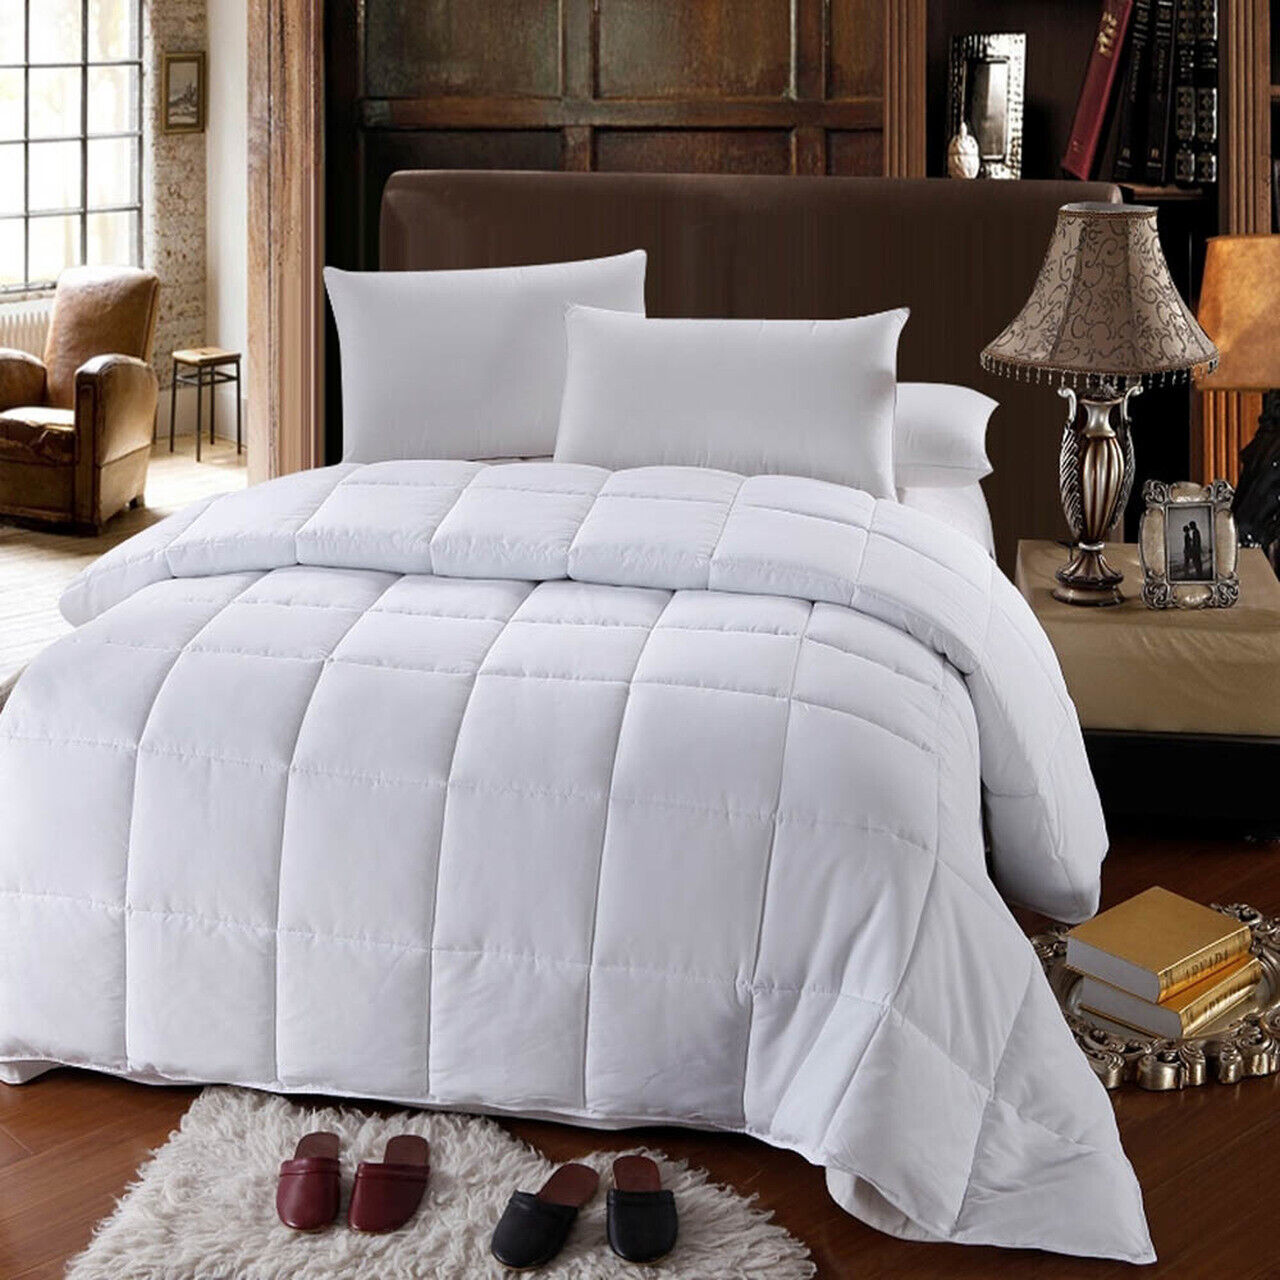 Royal All Season Down Alternative Quilted Comforter Box Stit